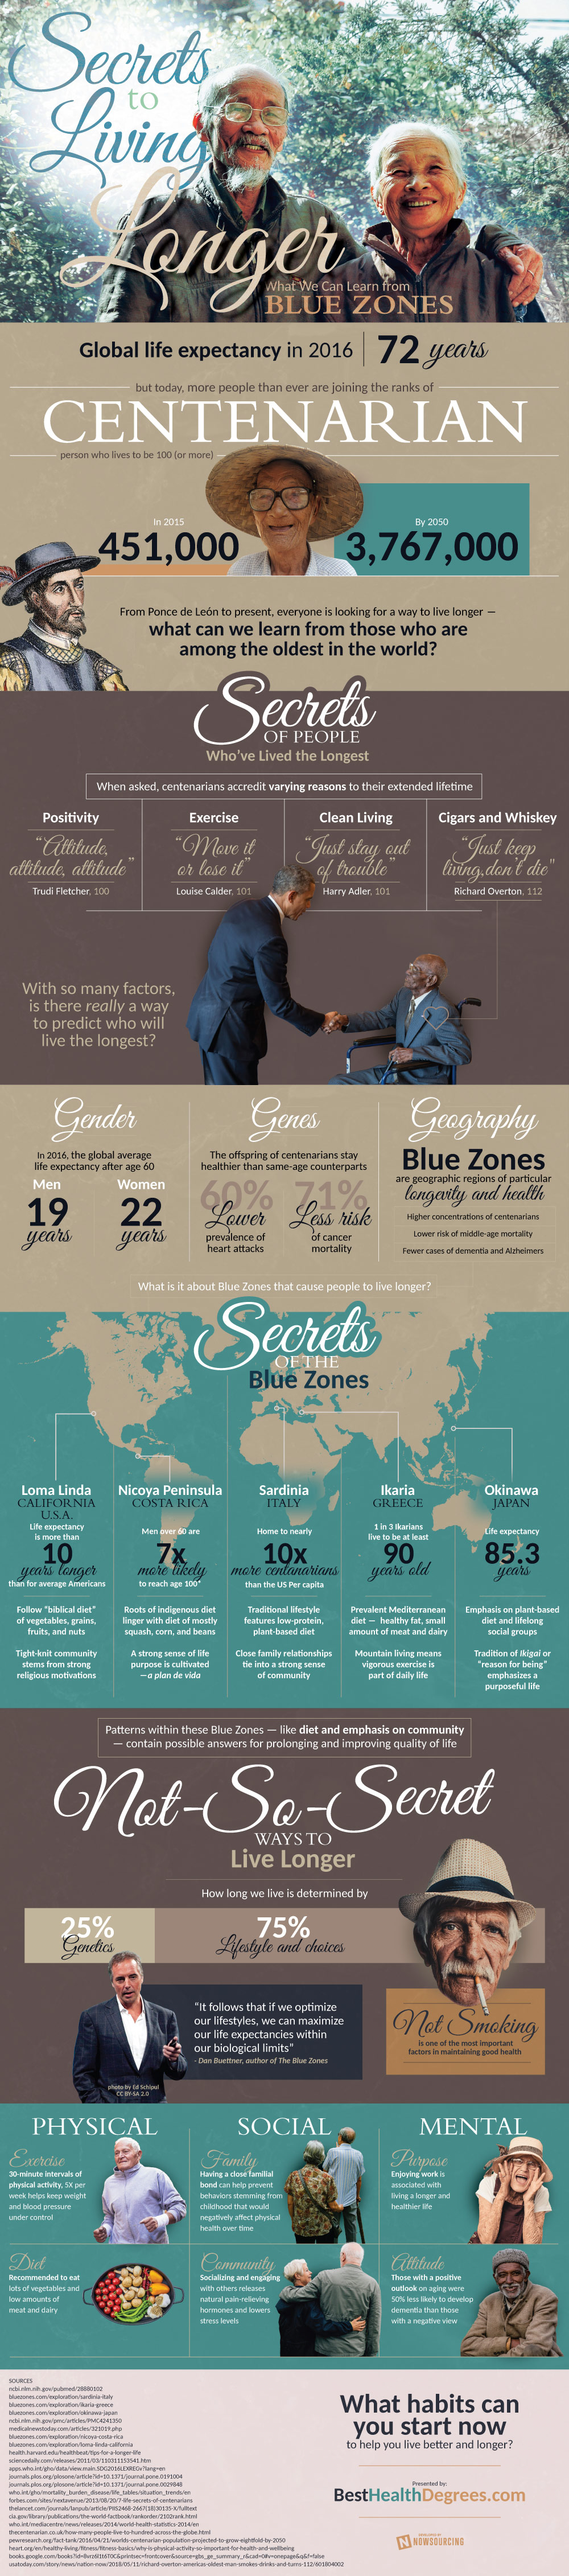 Secrets to Living Longer - Infographic